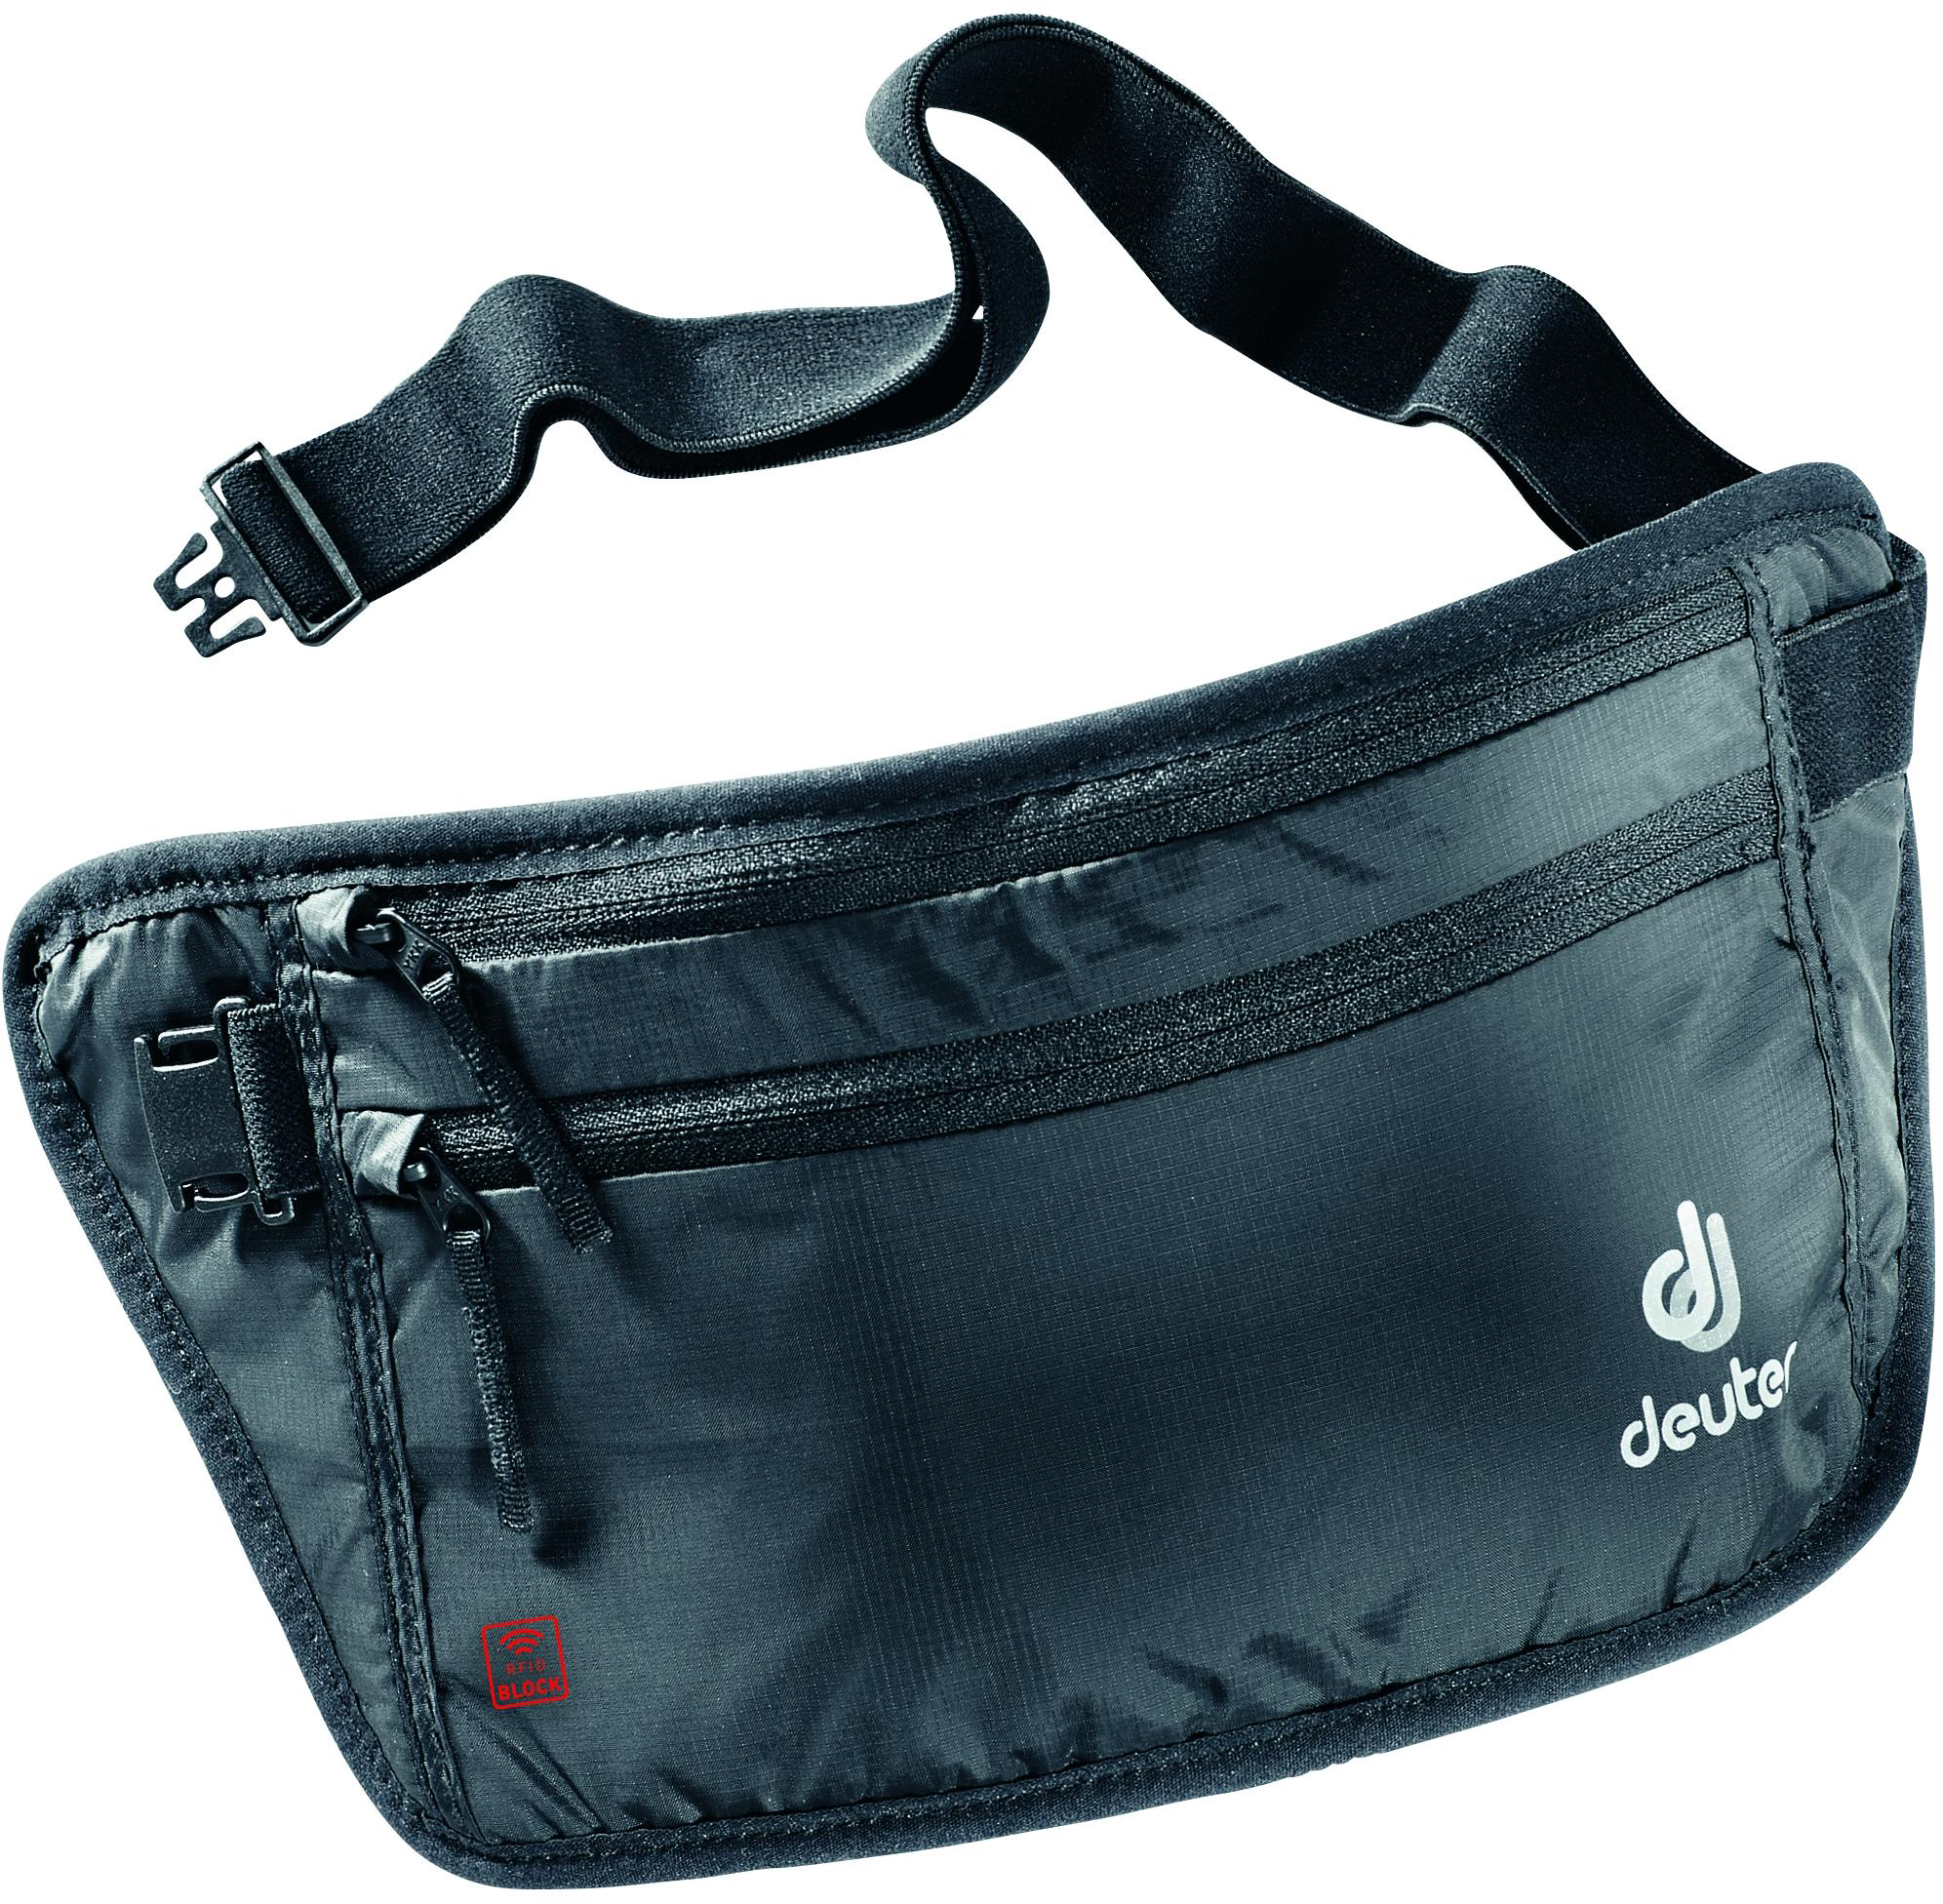 Кошельки Кошелек поясной Deuter Security Money Belt II RFID BLOCK (2020) 50b6463d7b99be55c19d91468281cabf.jpg